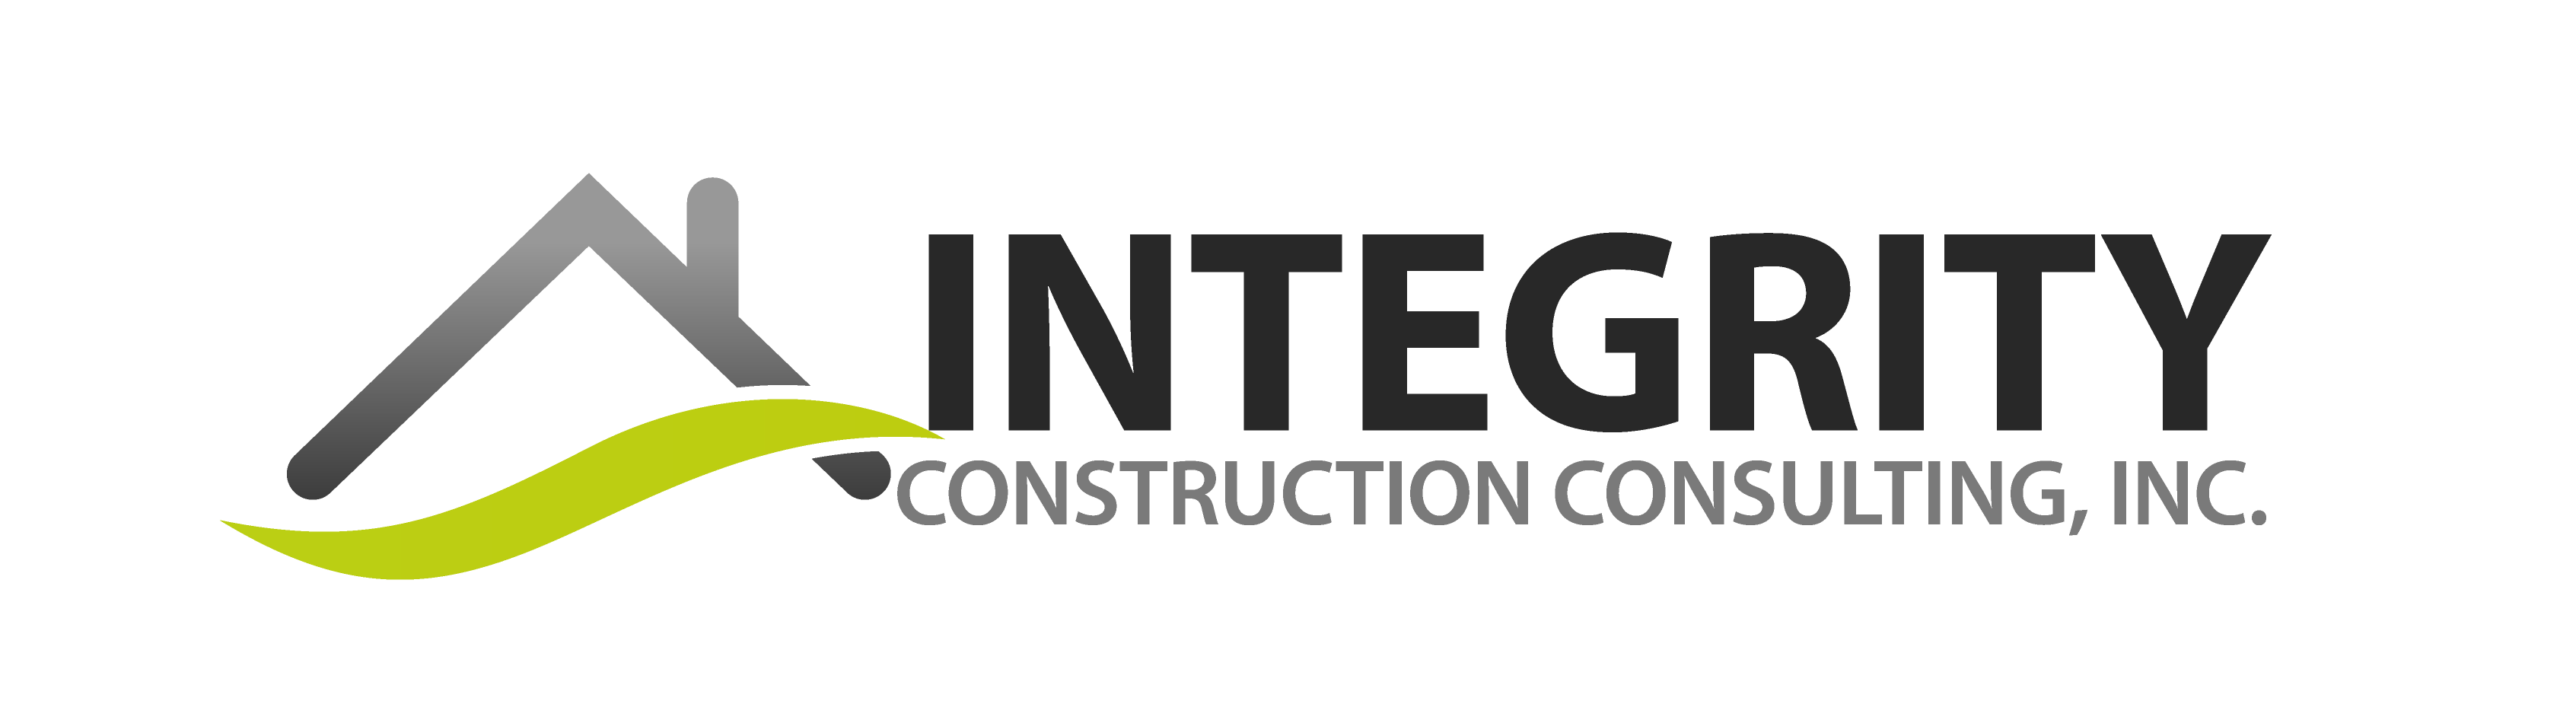 Integrity Construction Consulting, Inc.